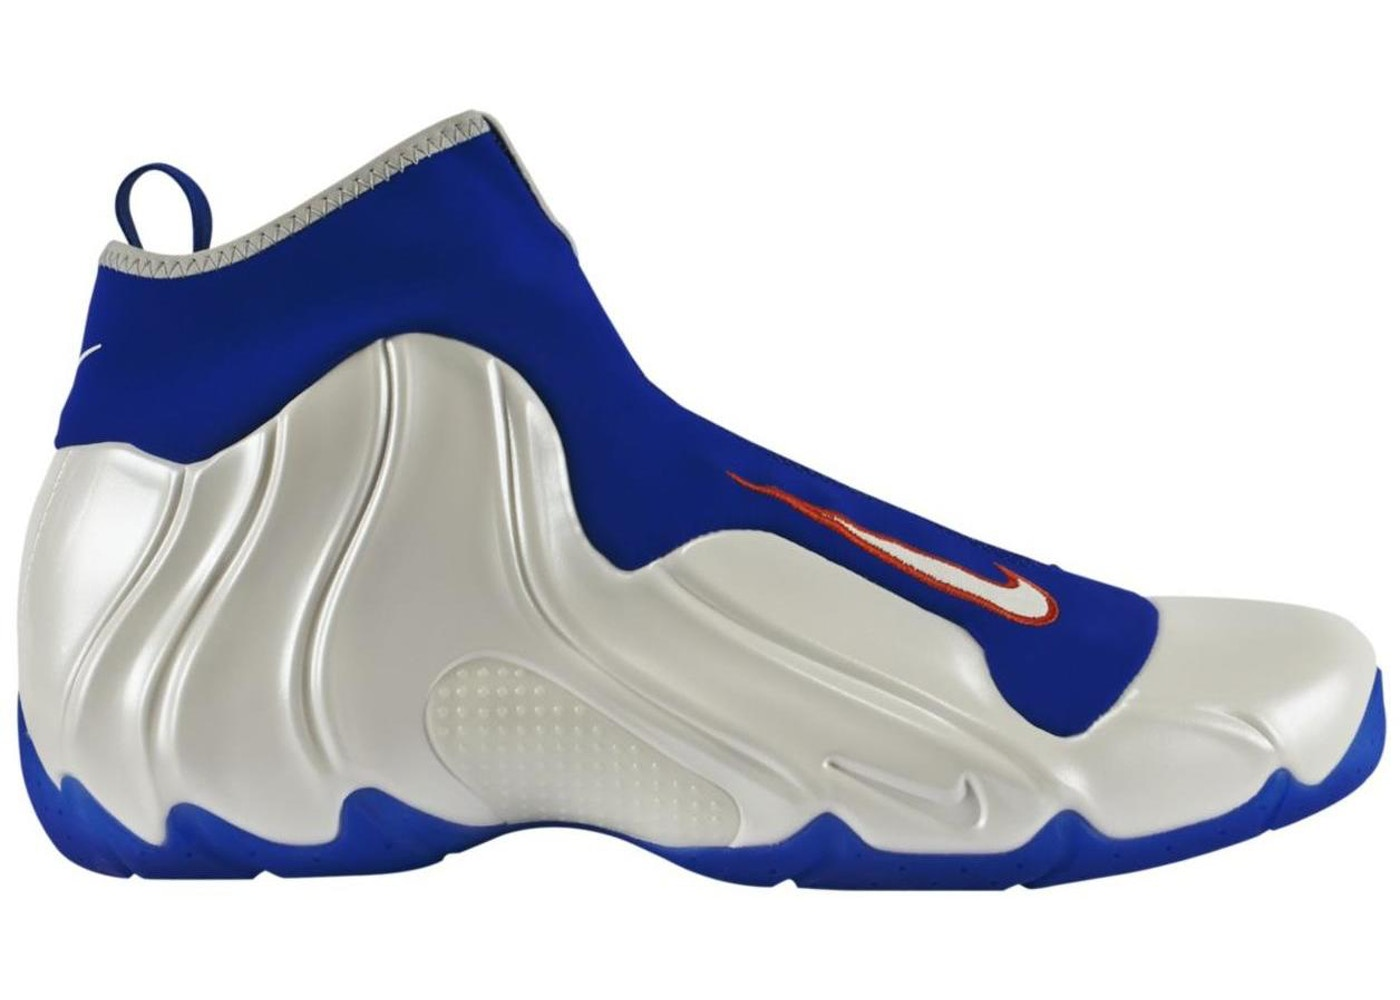 ナイキ NIKE エア ニックス スニーカー 【 AIR FLIGHTPOSITE KNICKS 2014 WHITE GAME ROYALTEAM ORANGE 】 メンズ